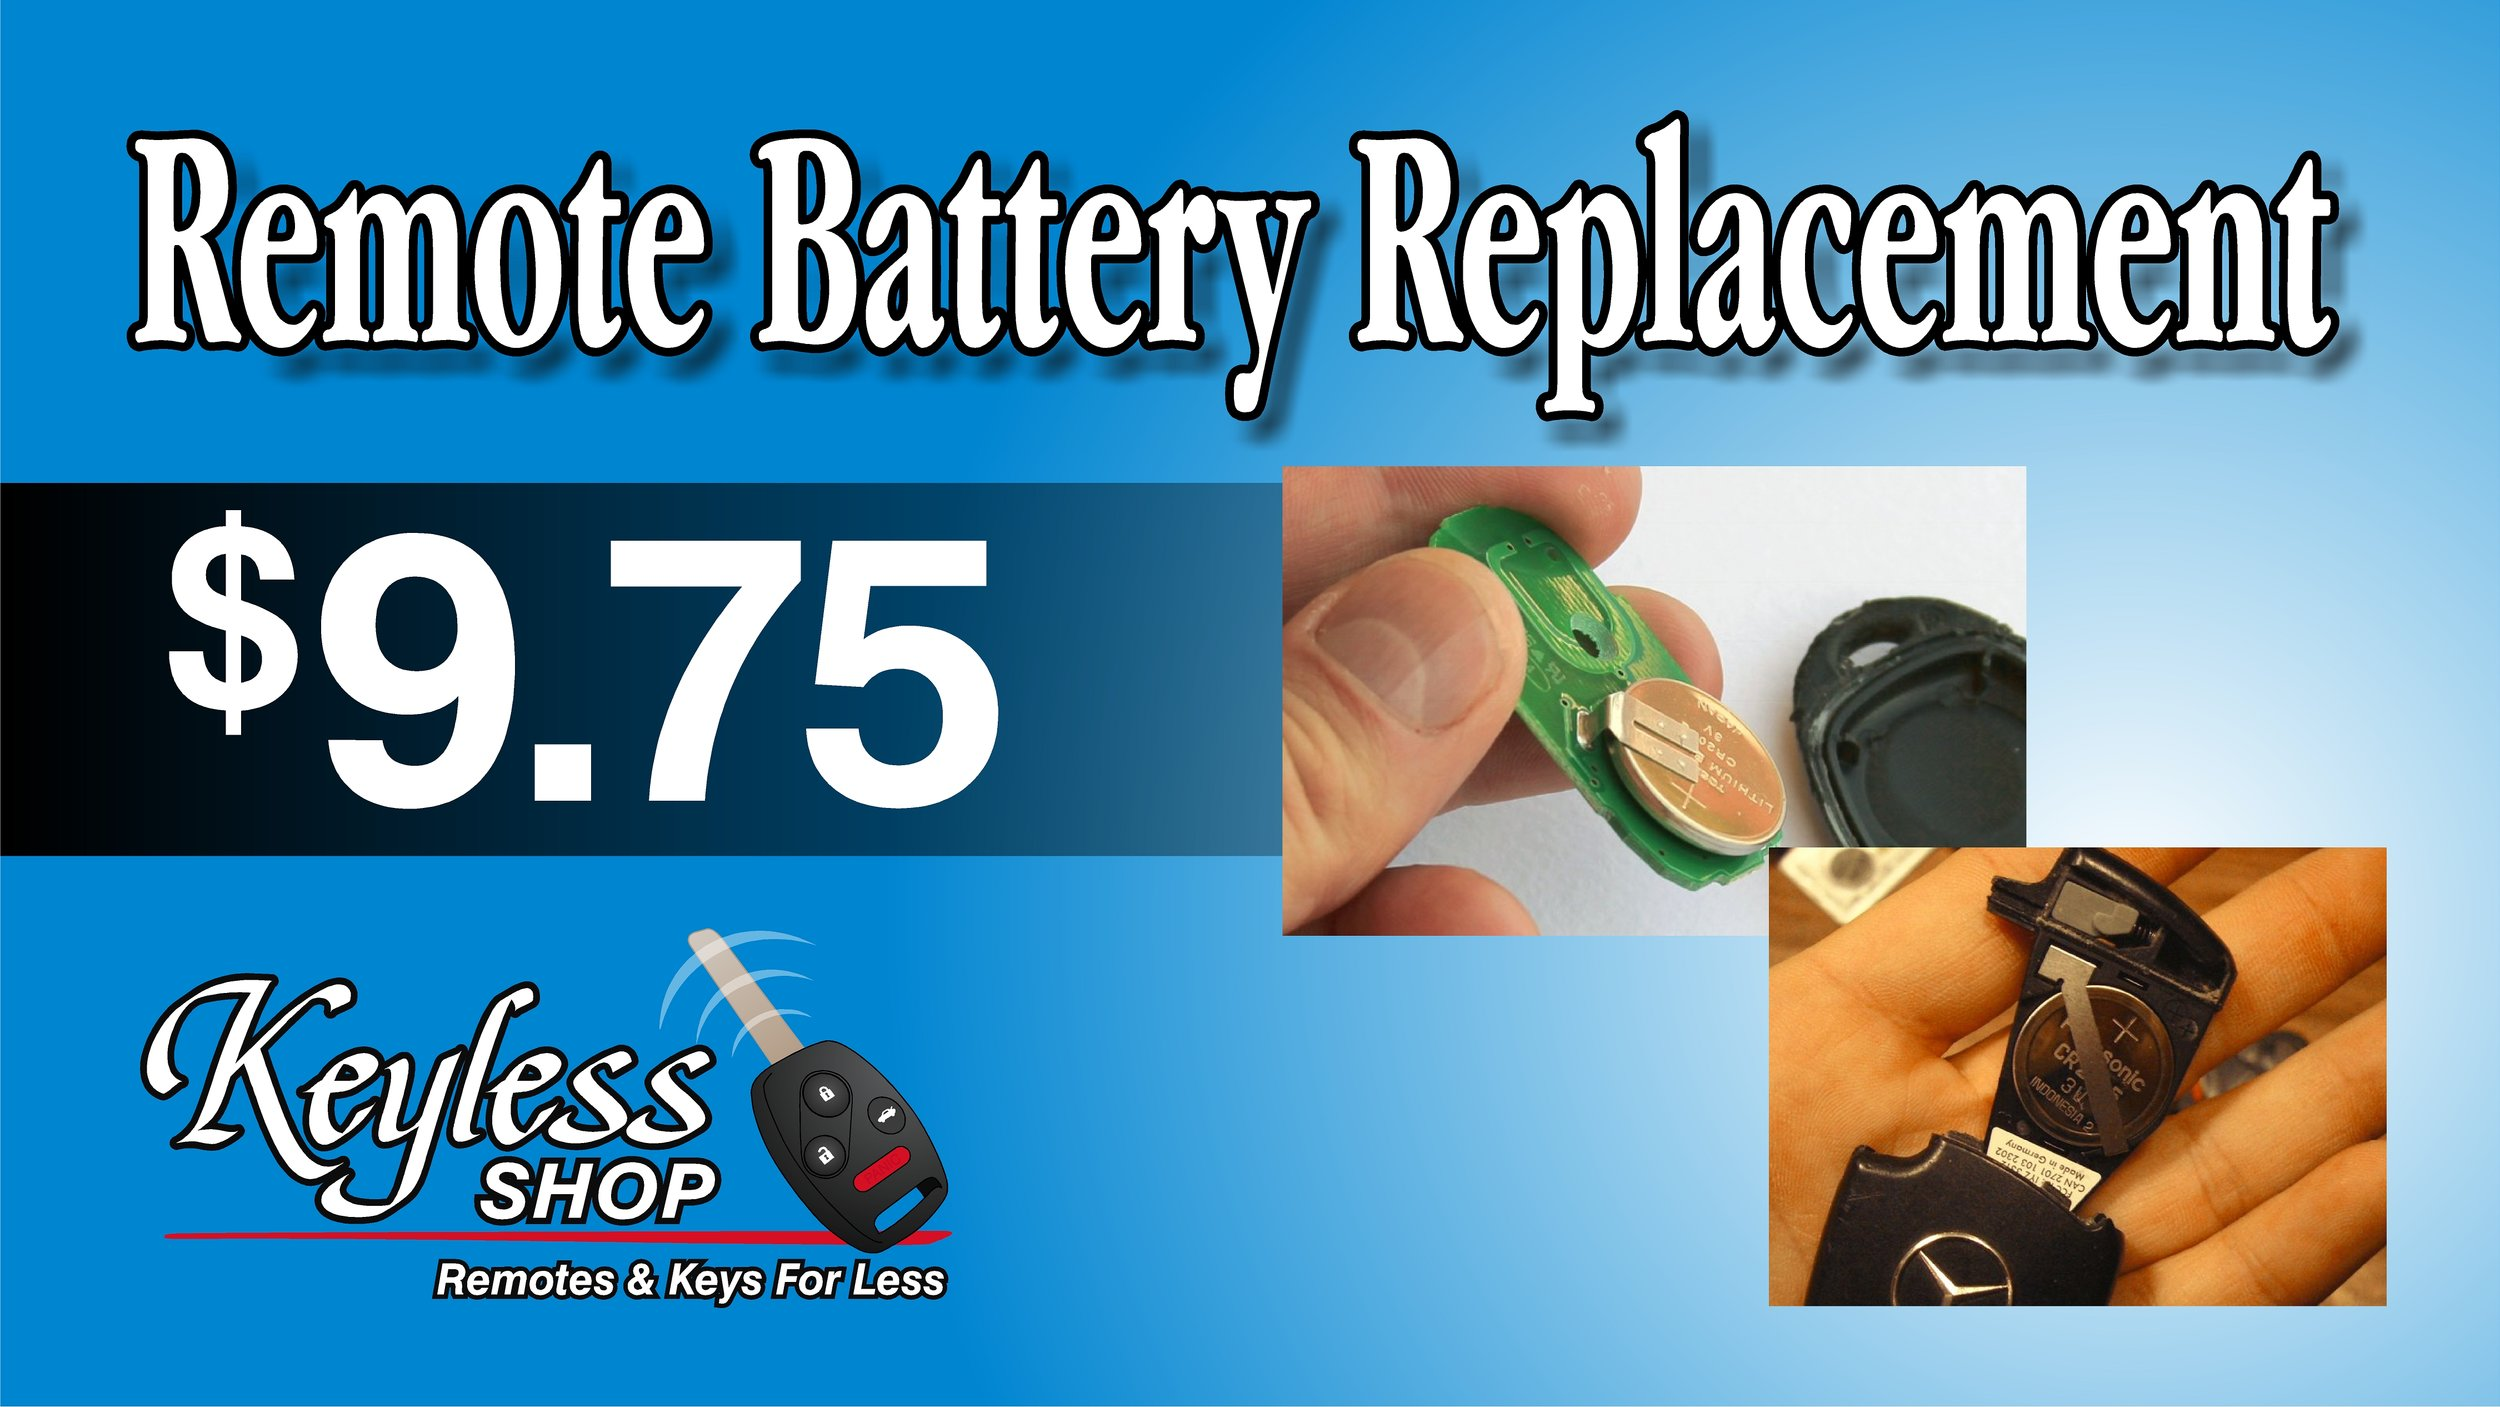 Key fob battery replacement available at any Keyless Shop at Sears location. Not near any of our locations? Don't worry, we can mail you correct battery for your key with battery replacement instructions for only $14.75. Purchase comes with two batteries. Call now 800-985-9531